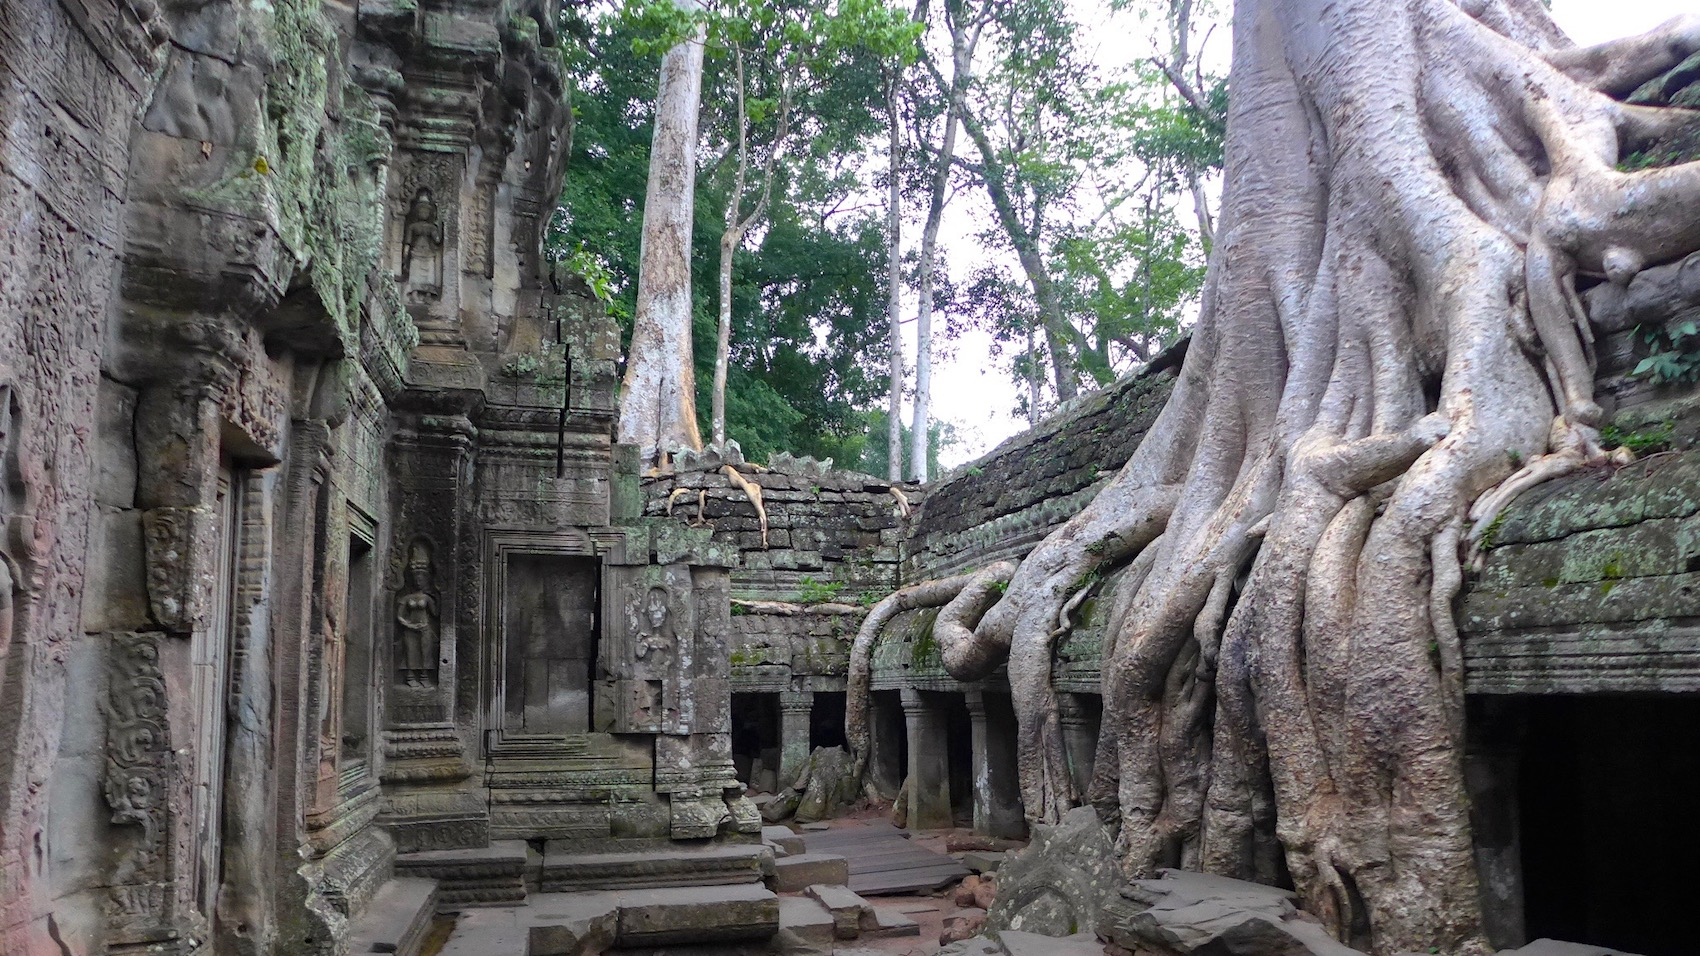 Getting the Best from Angkor Wat in 2 Days - Part 1